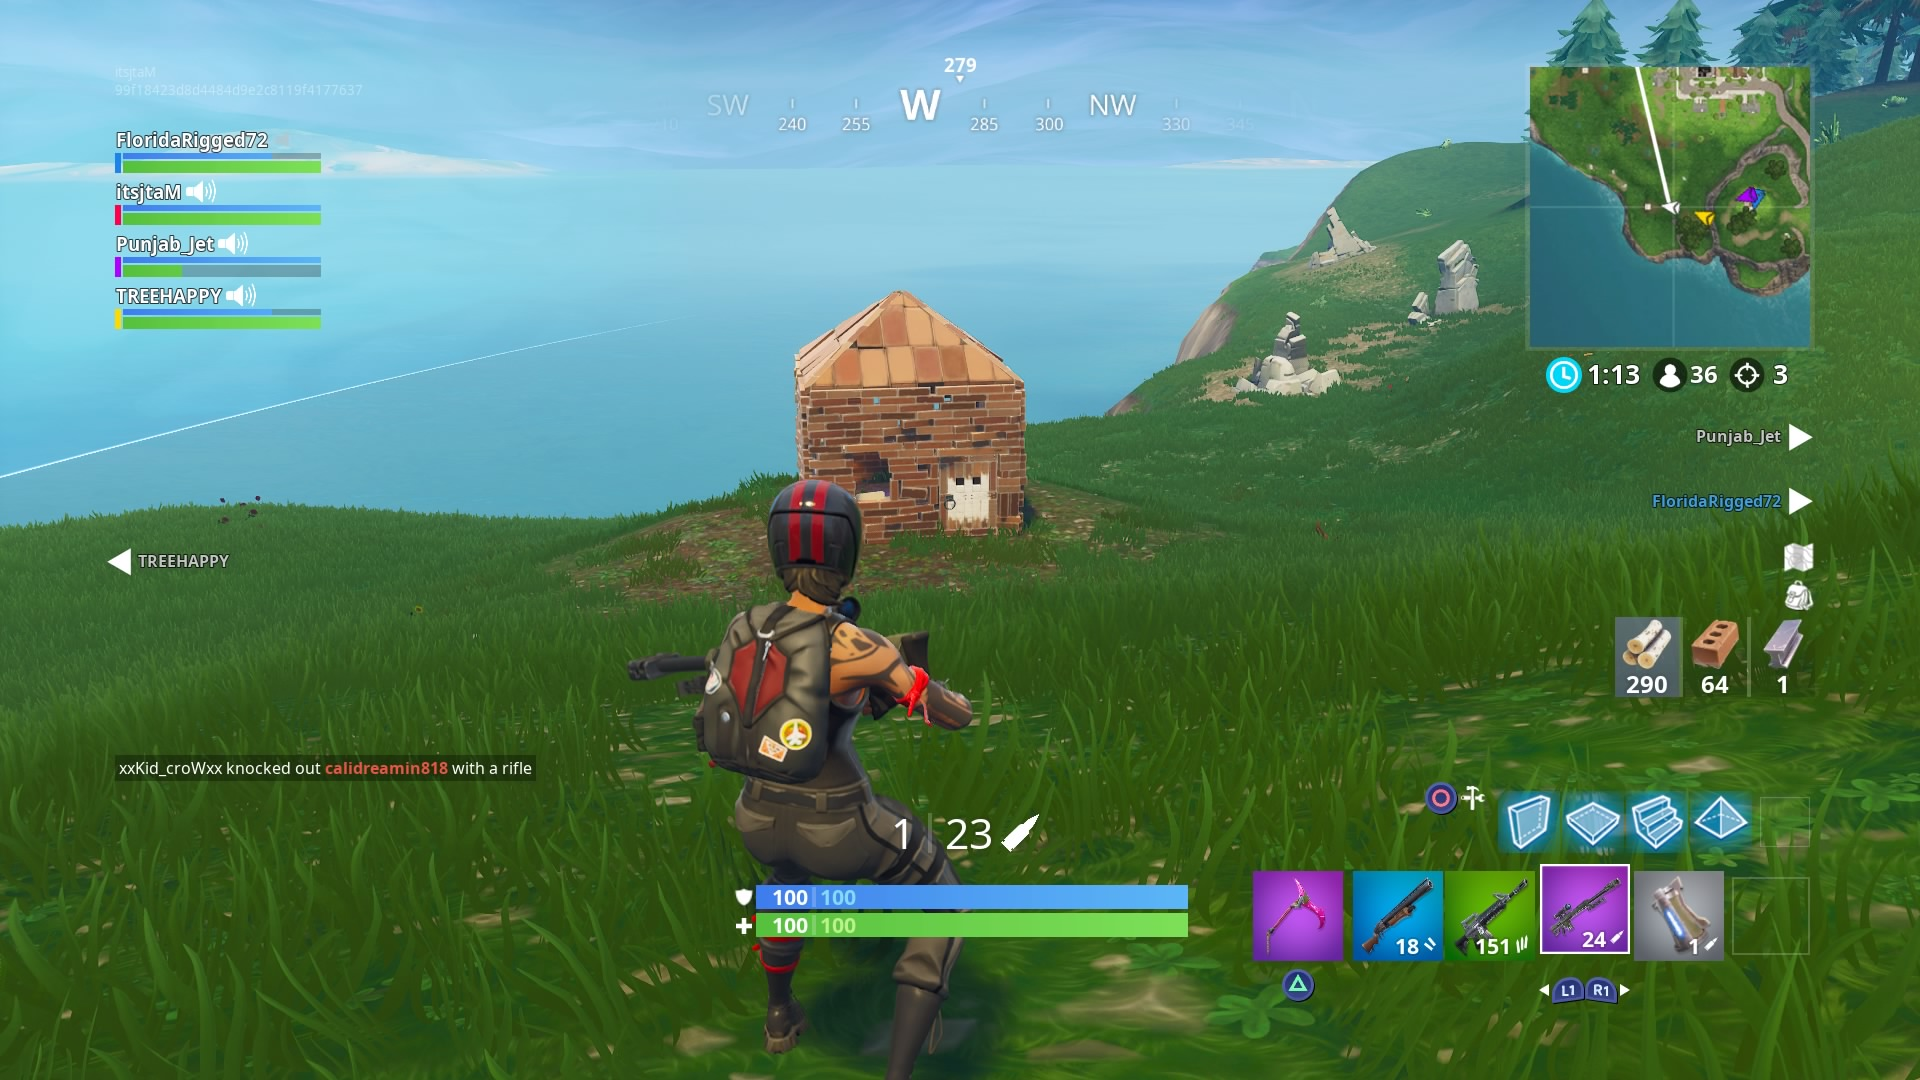 fortnite little house wallpaper 65395